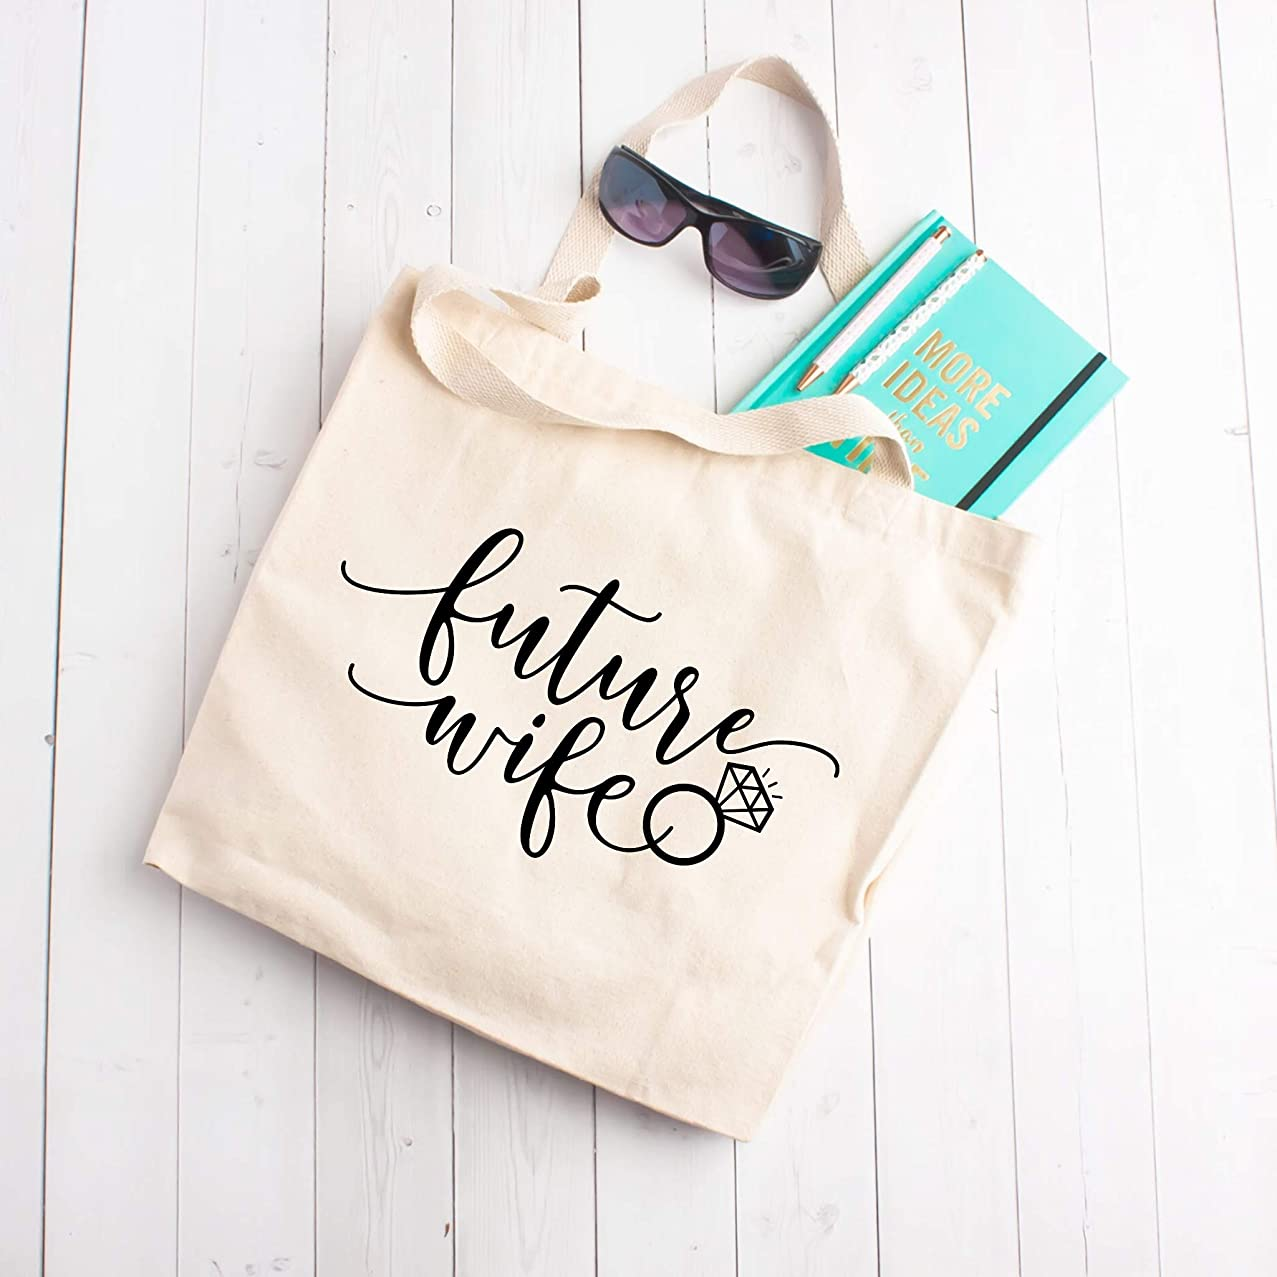 Future Wife Large Tote Beach Bag - Cute Sarcastic Funny Bag for Women - Unique Fun Gifts for Mom, Sister, Best Friend, Her under $30 - Handmade Printed in the USA Bags with Quotes